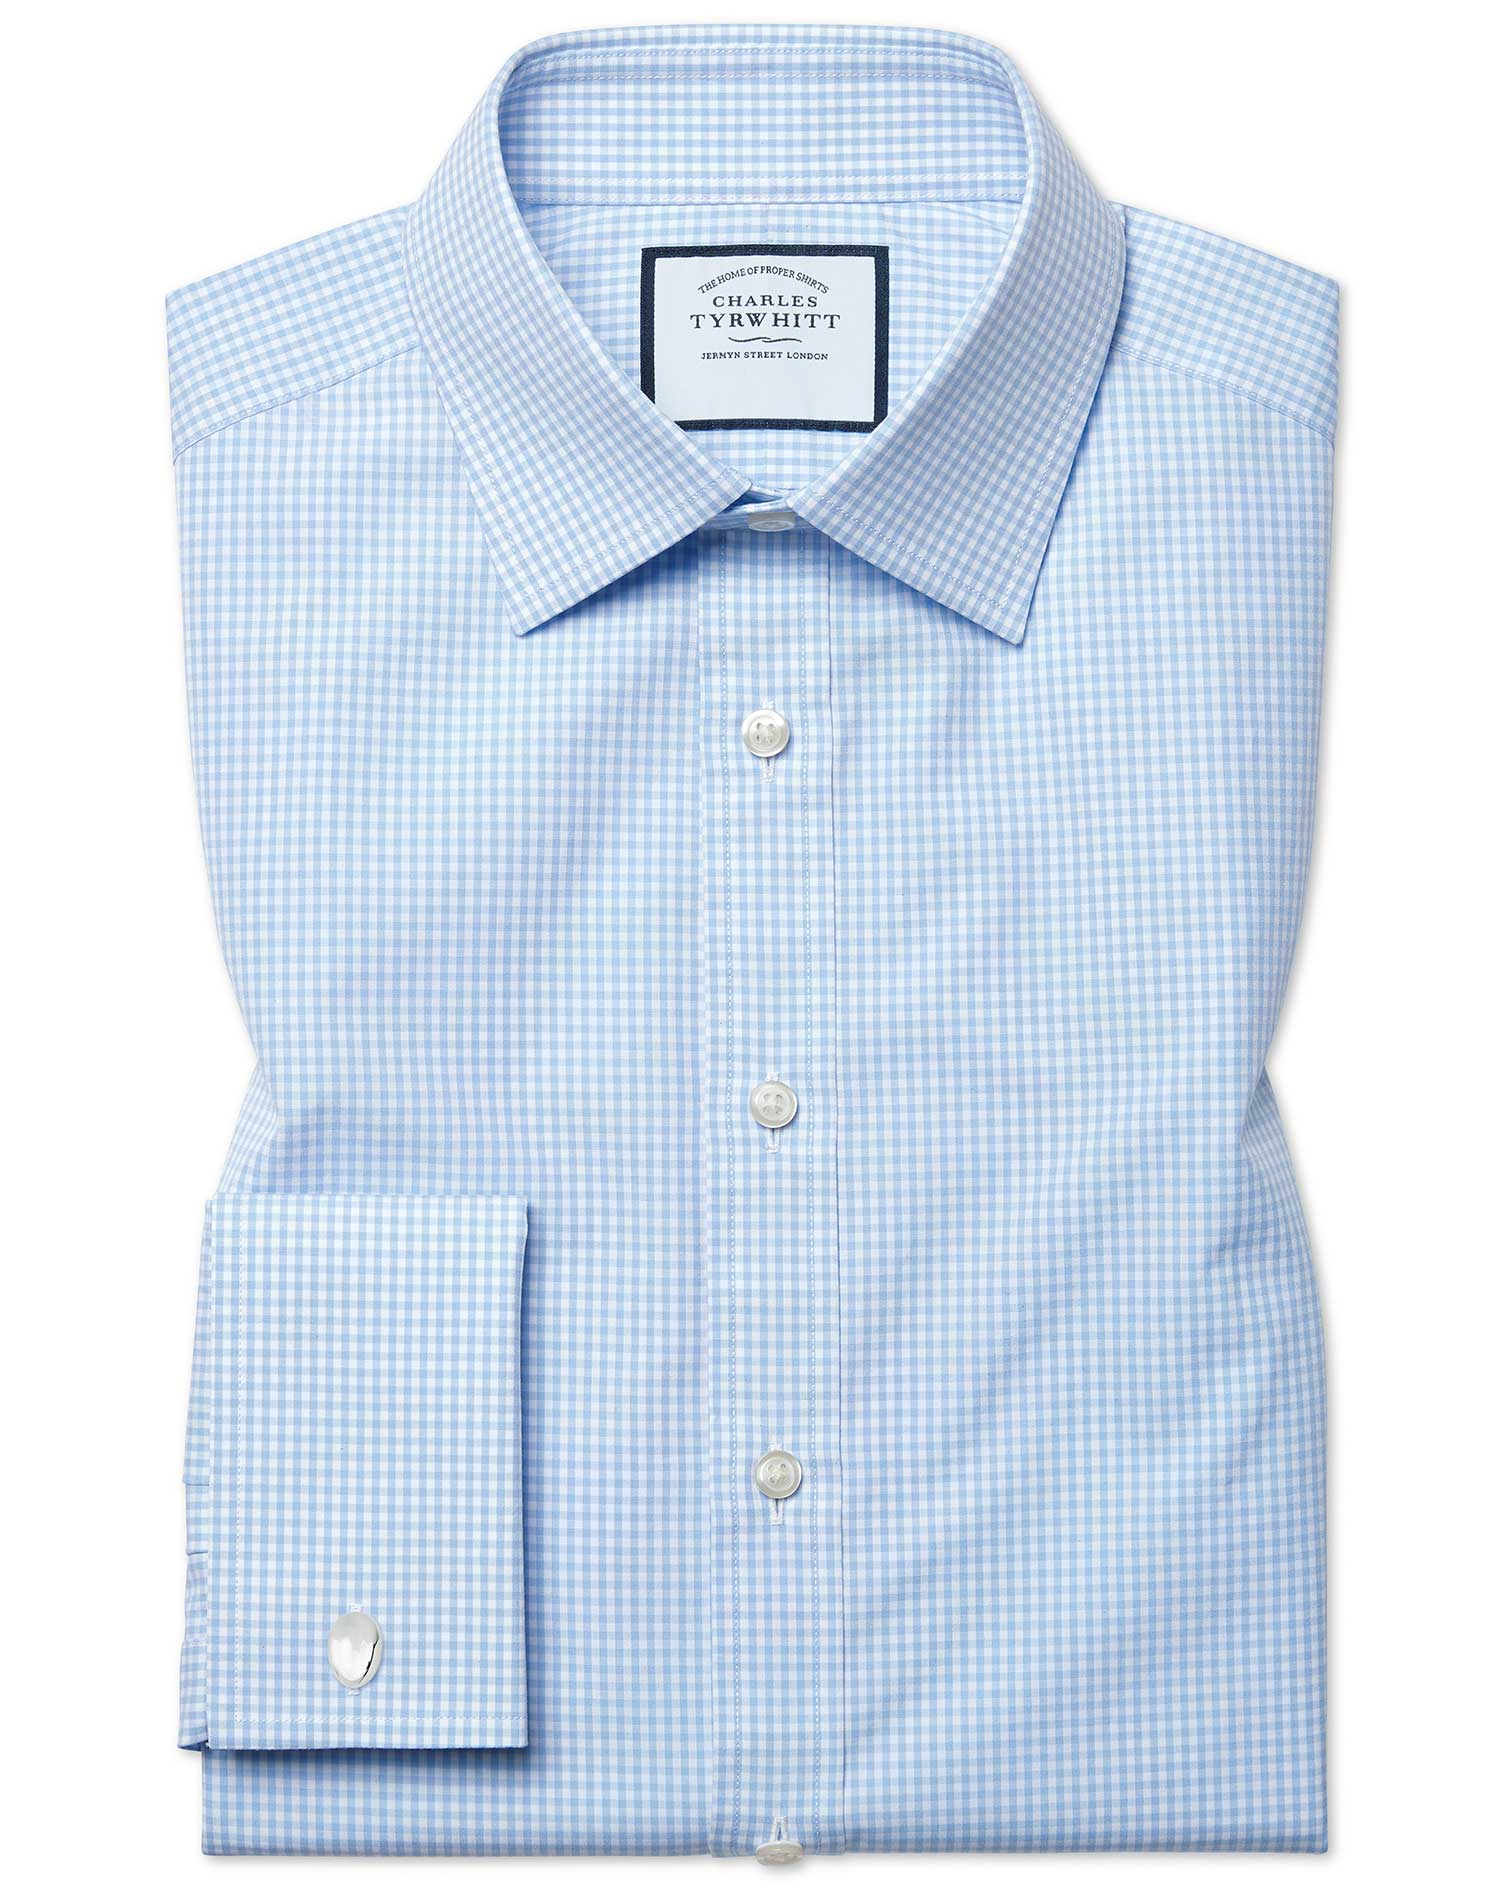 Extra Slim Fit Sky Blue Small Gingham Cotton Formal Shirt Single Cuff Size 17/34 by Charles Tyrwhitt